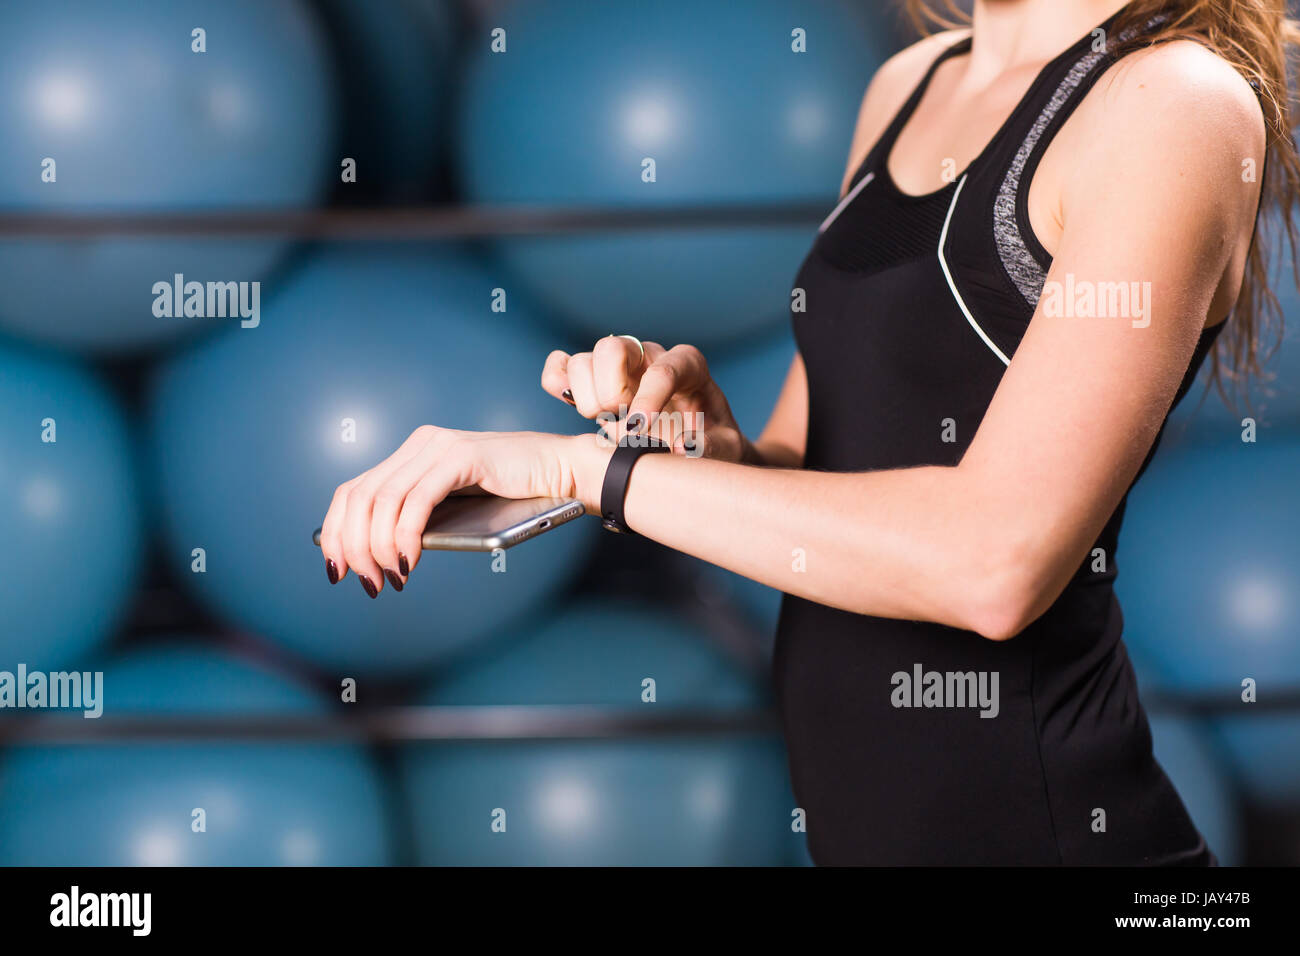 Close-up of female hands with fitness tracker and smartphone in gym - Stock Image